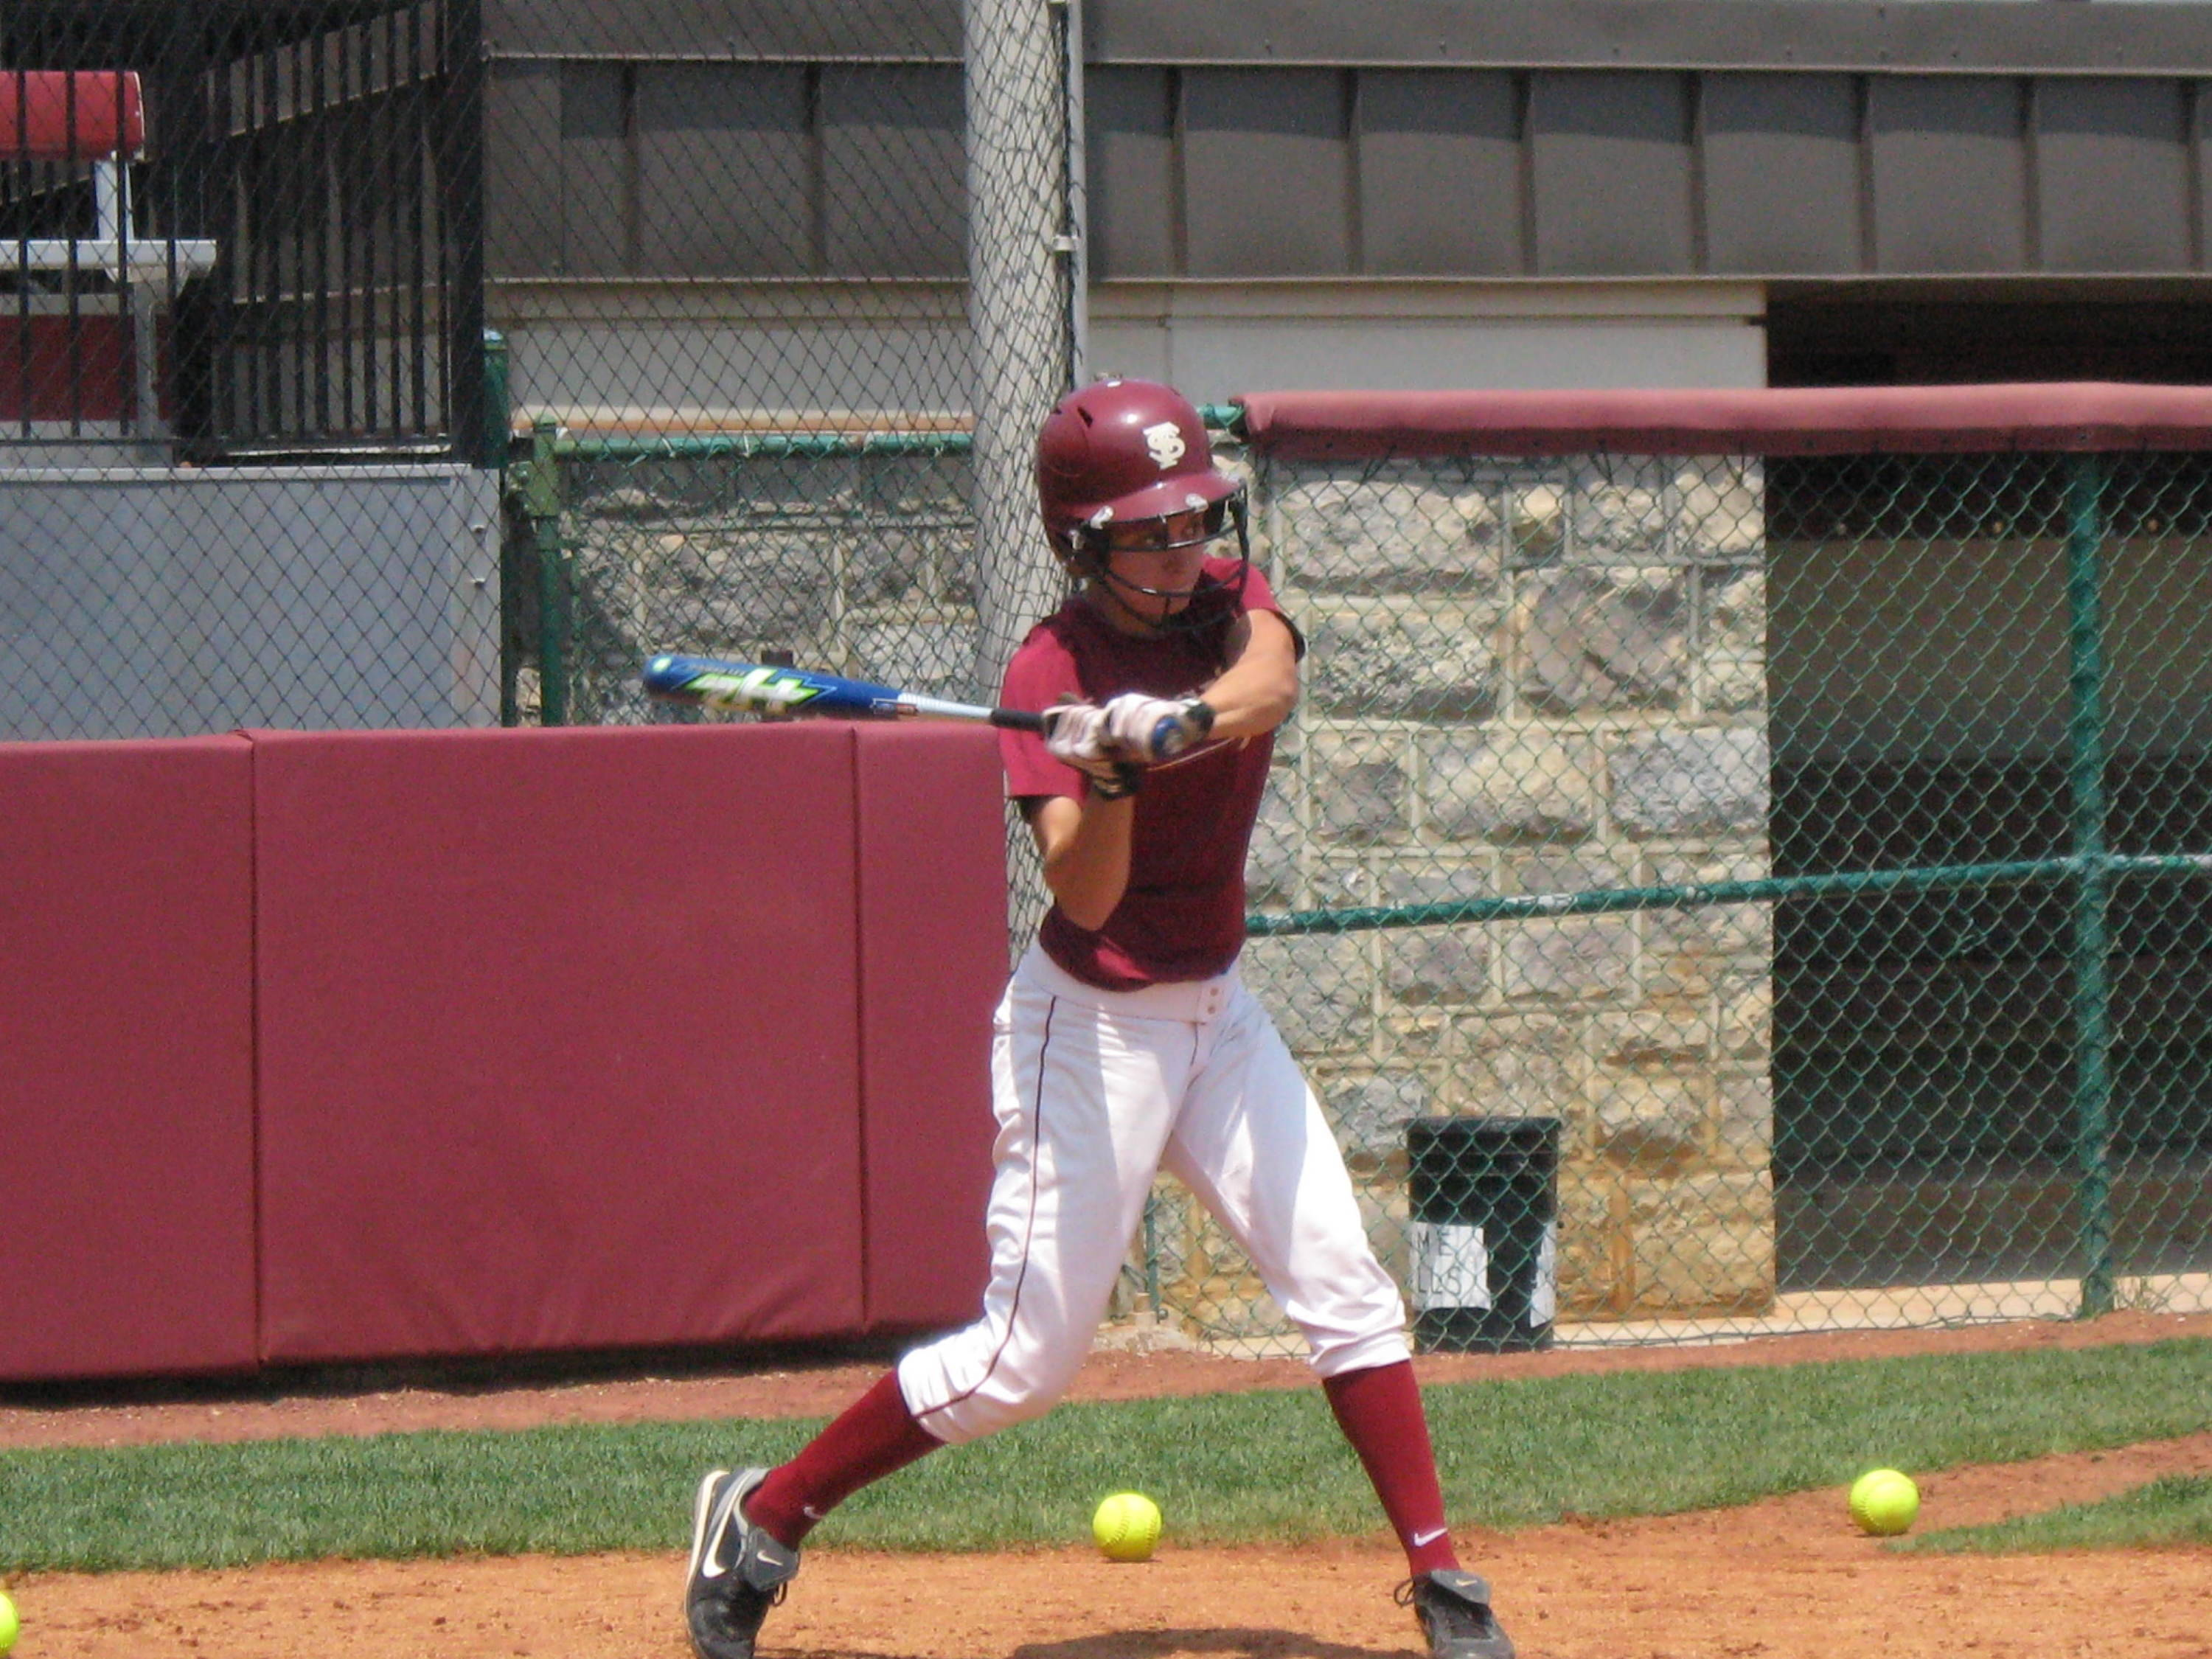 Brittany Joseph gets ready to hit a pitch during Thursday's practice.